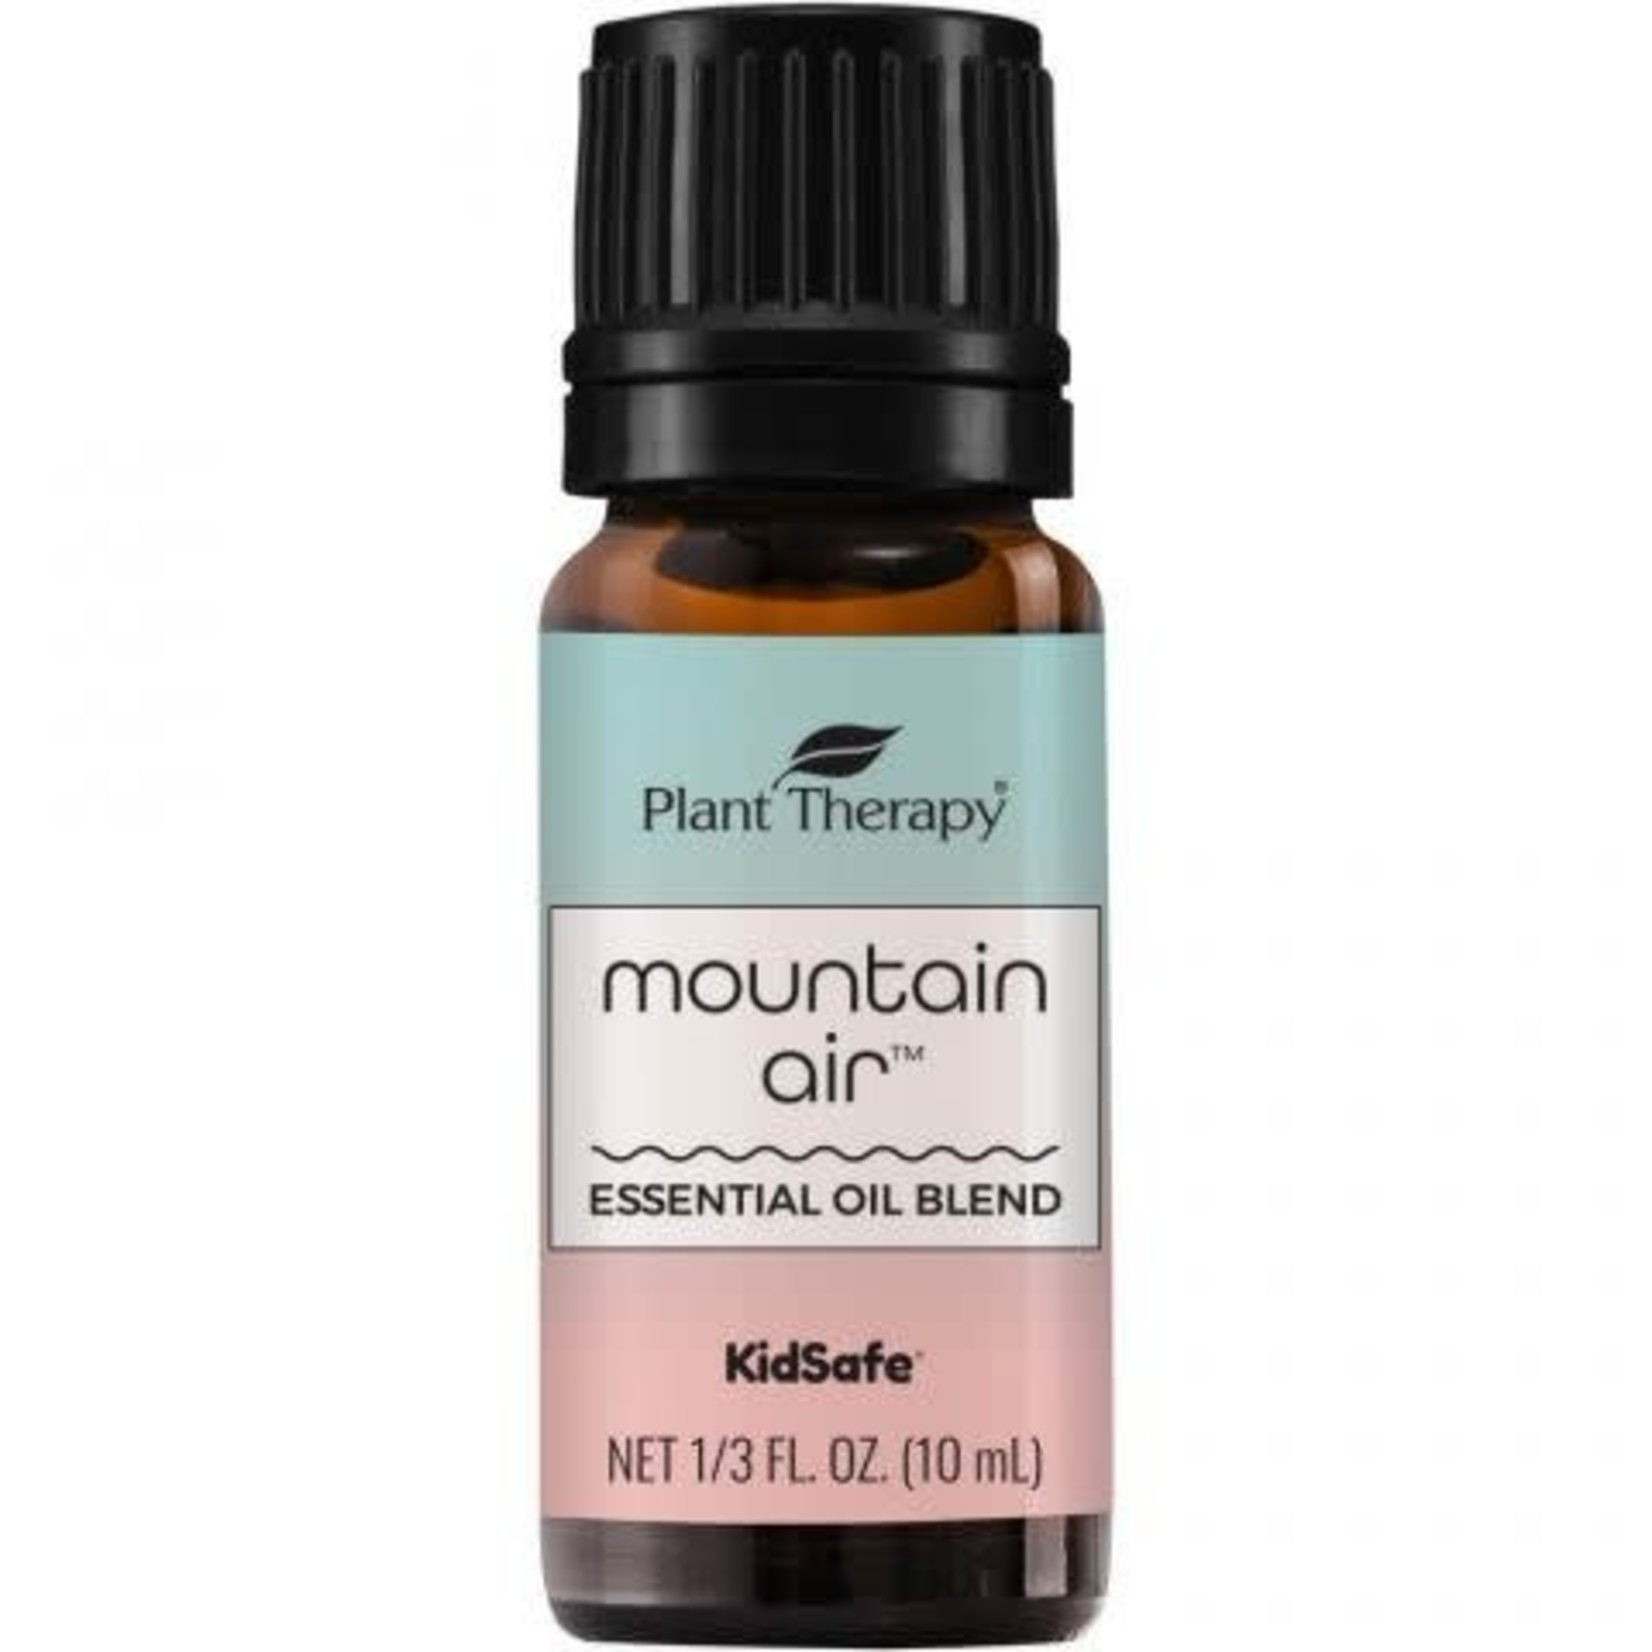 Plant Therapy PT Mountain Air Essential Oil 10ml